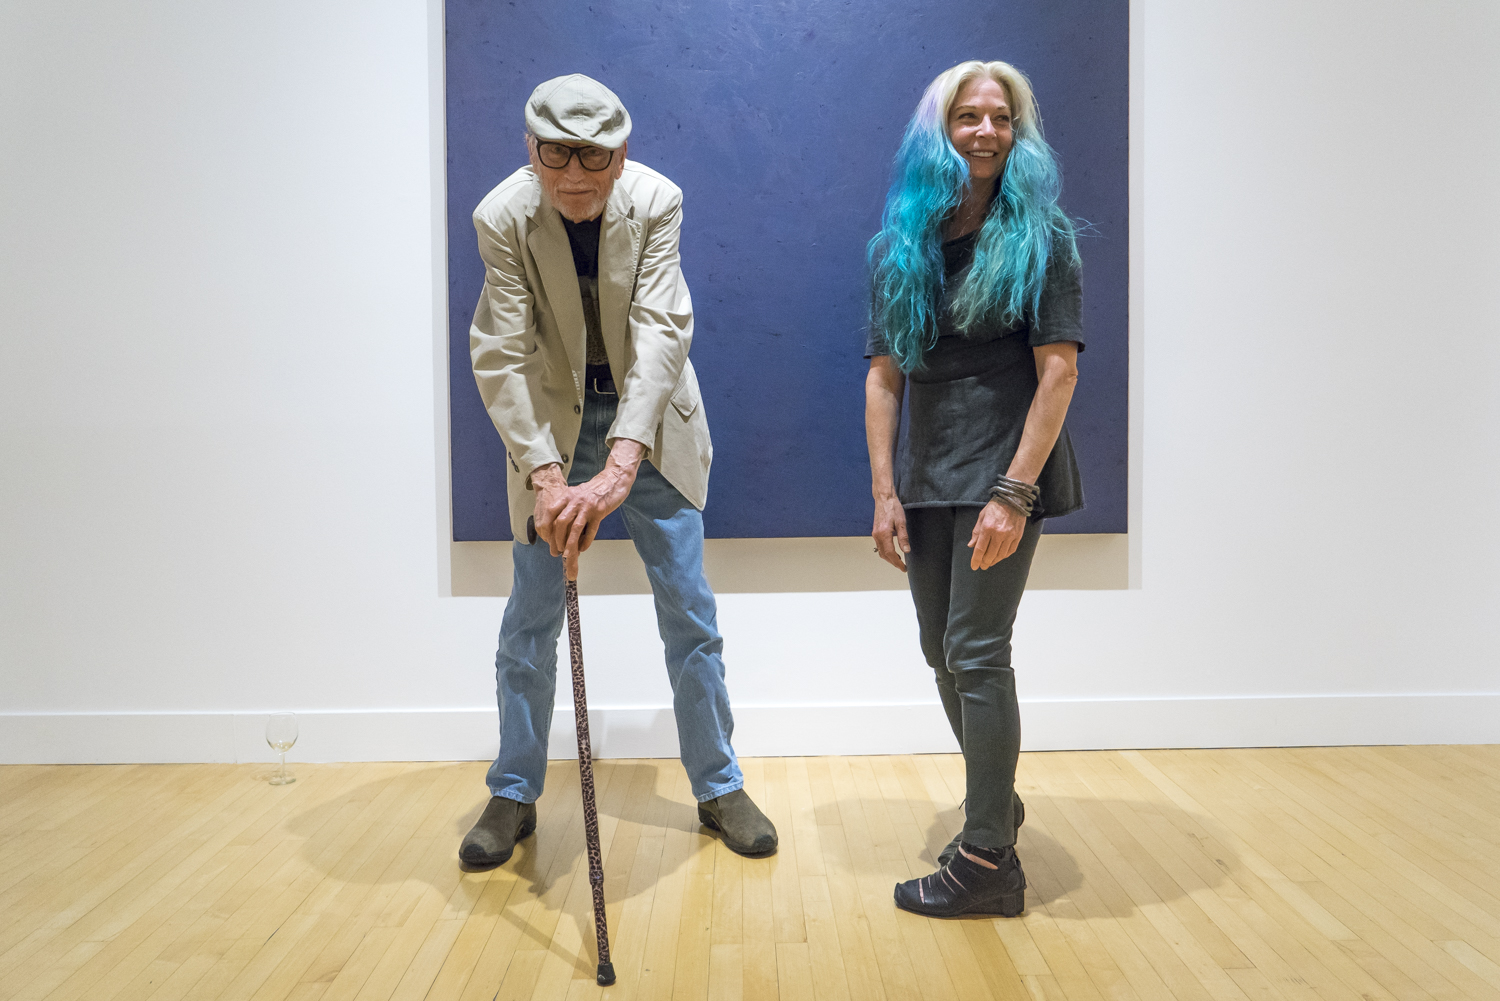 David Simpson and Cheryl Haines at the opening reception of Now & Then, Haines Gallery, San Francisco, California, September 8, 2016.  Photograph © 2016 Nina Dietzel